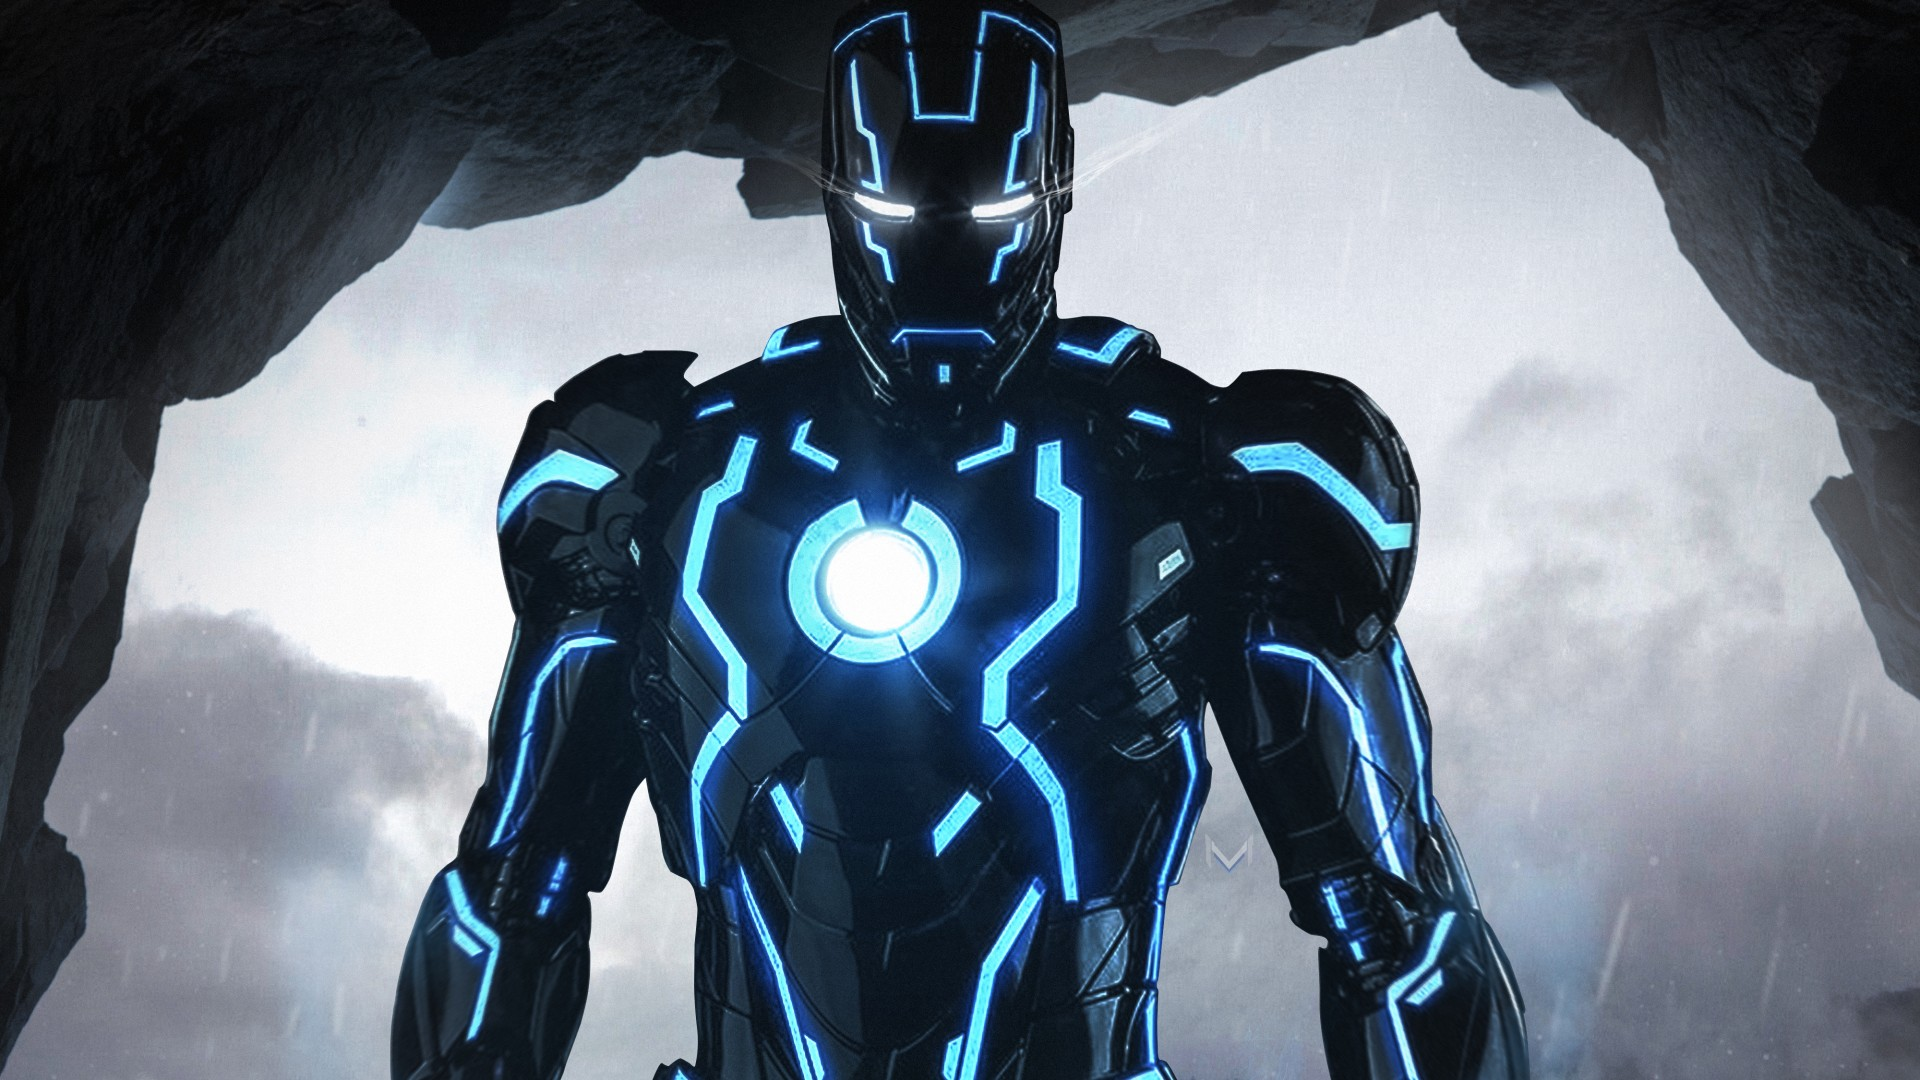 Neon Iron Man 4k Wallpaper 1920x1080 1080p Wallpaper